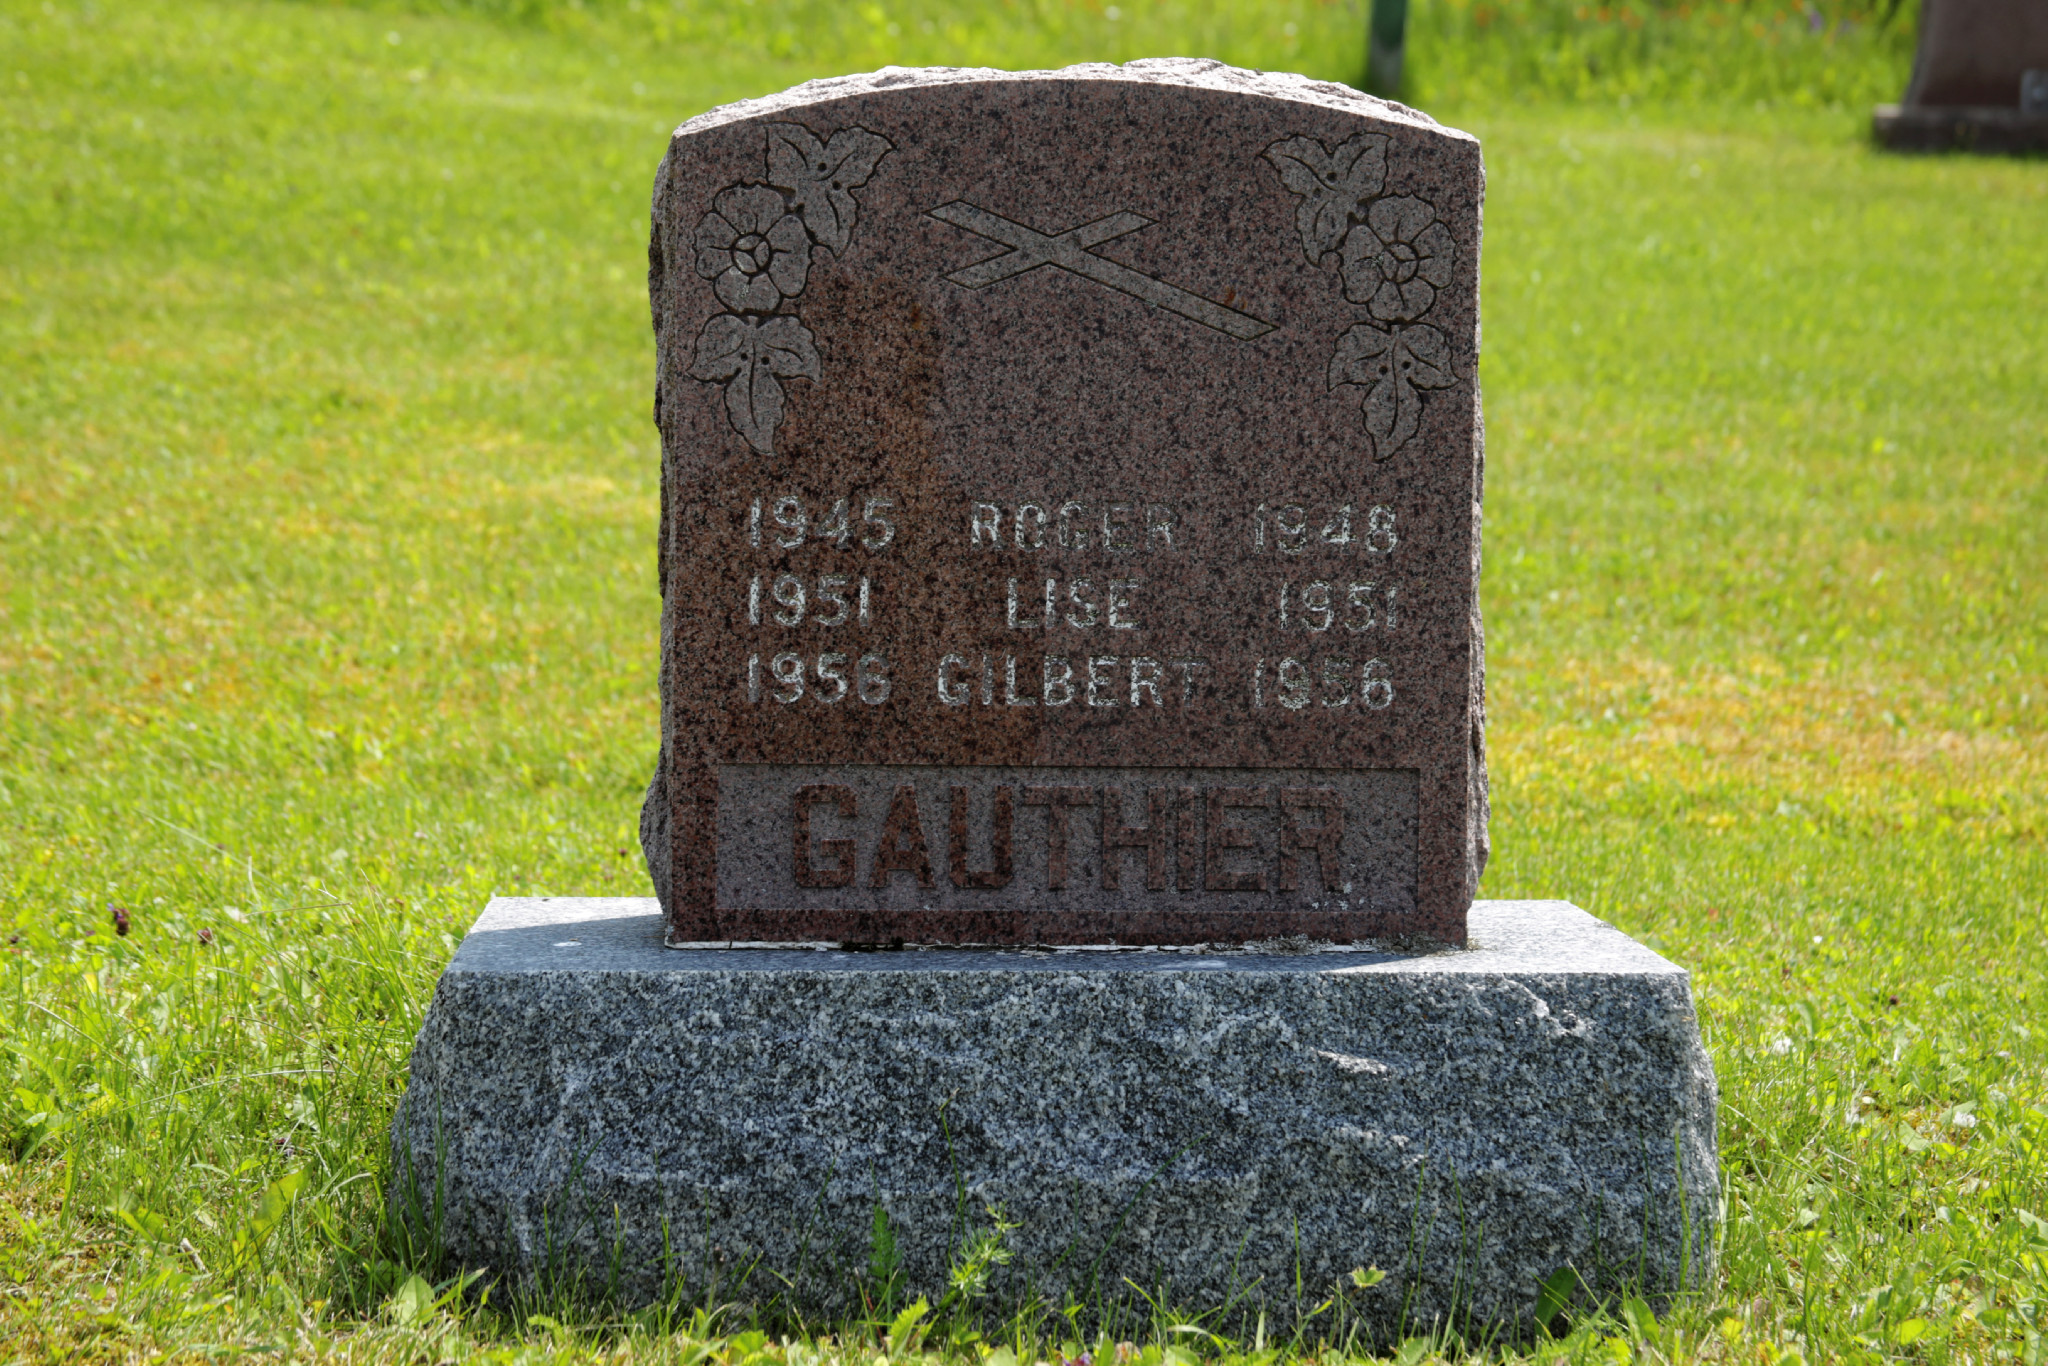 Roger Gauthier